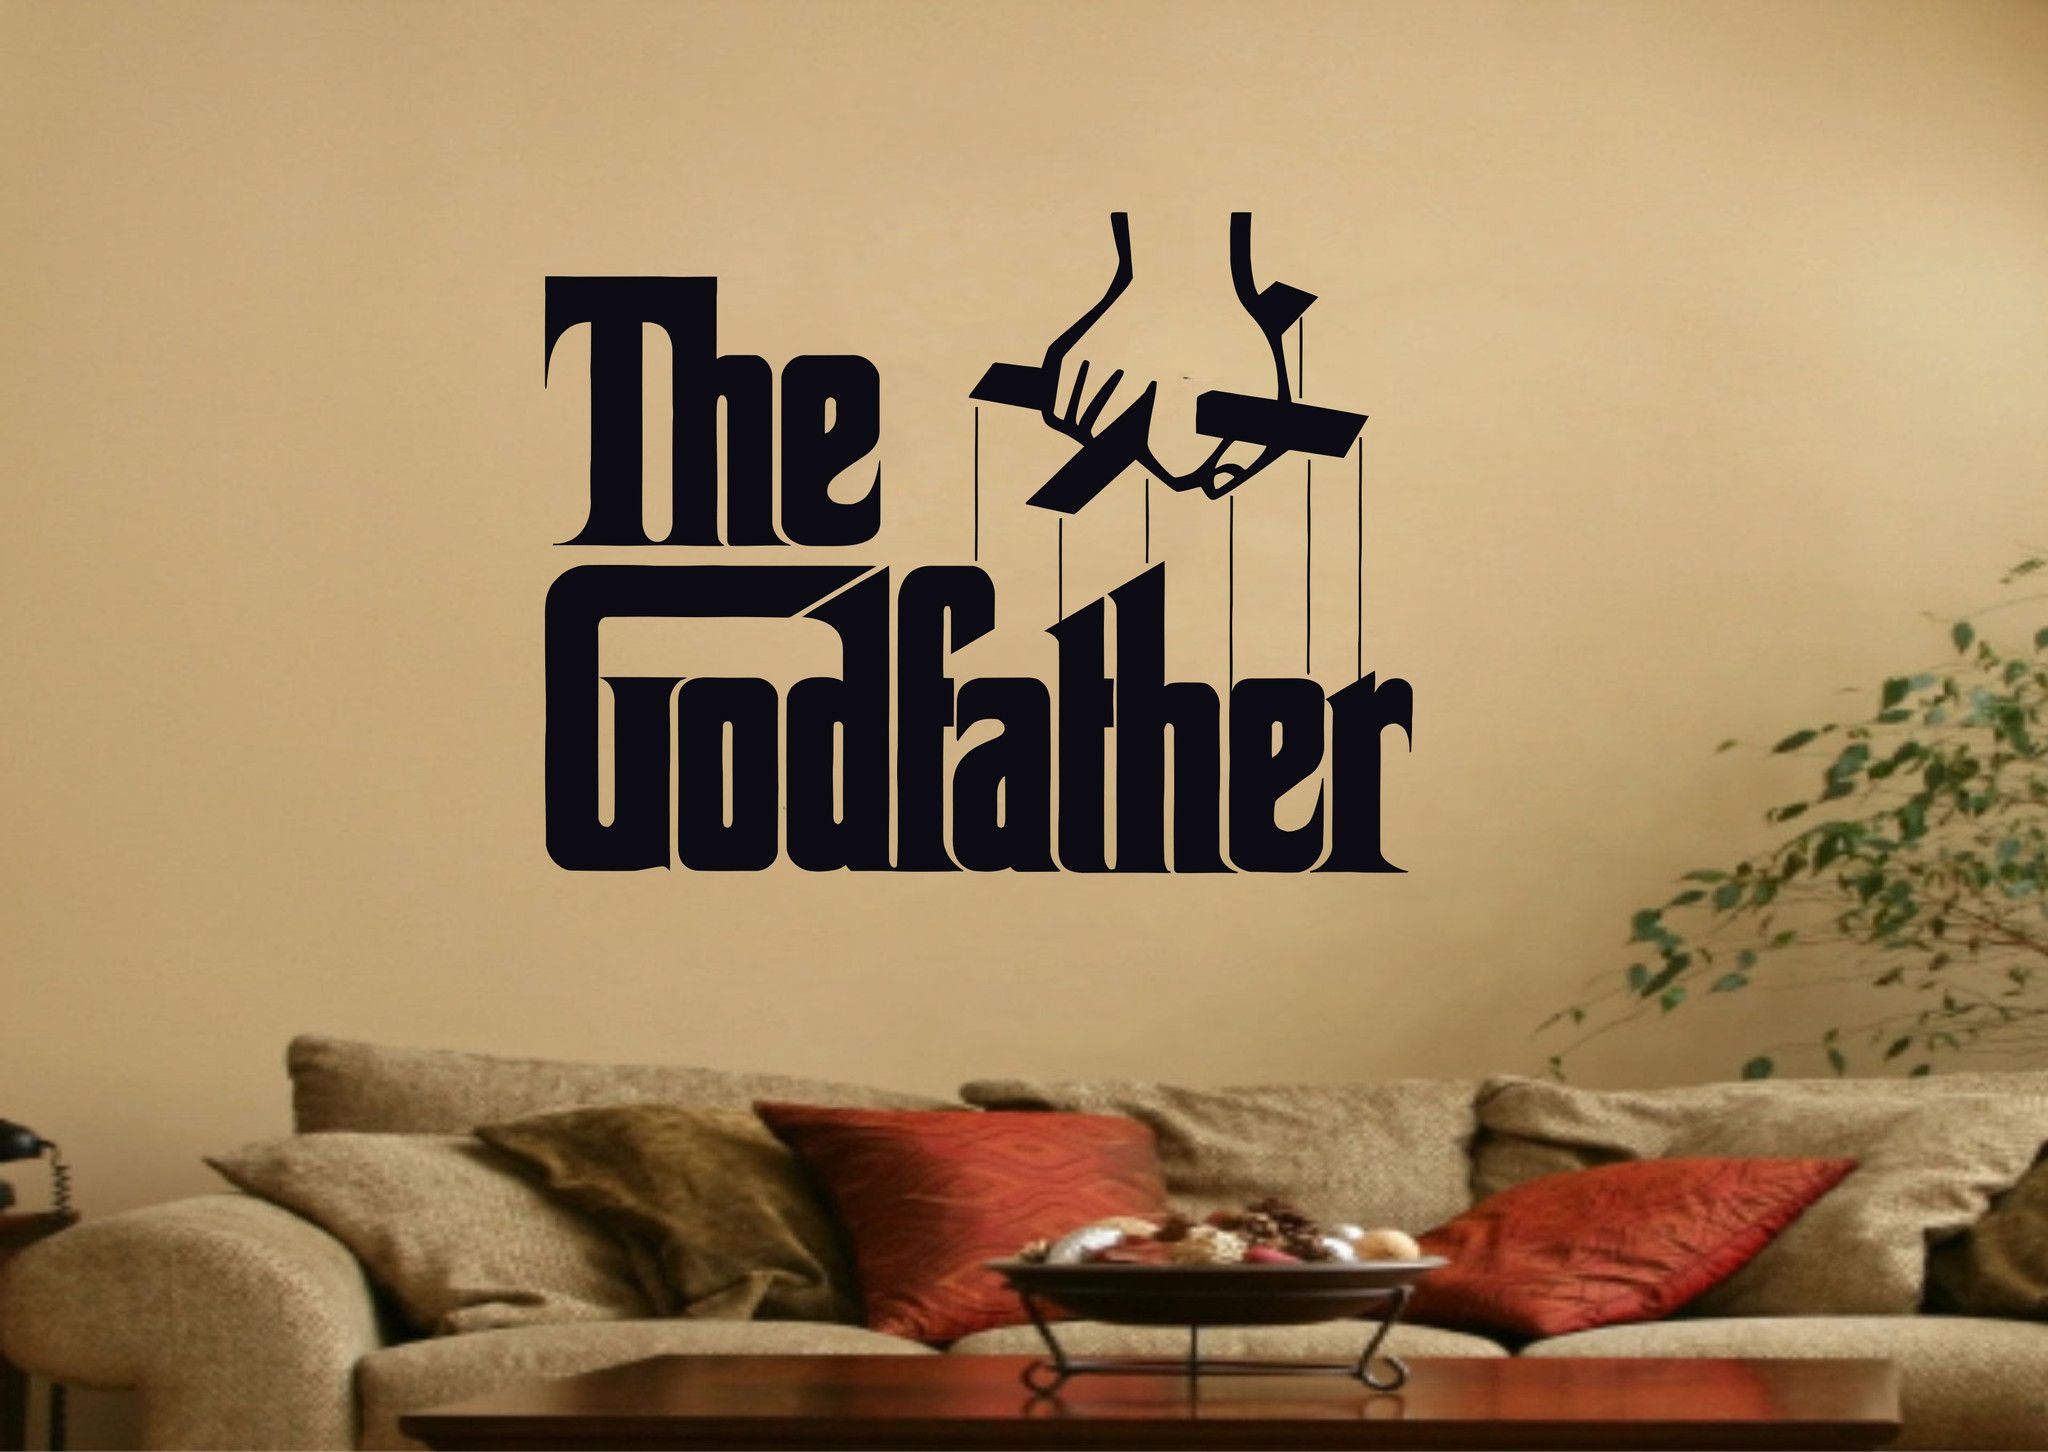 The Godfather Movie Wall Art Sticker – iwallstickers | vinil ...